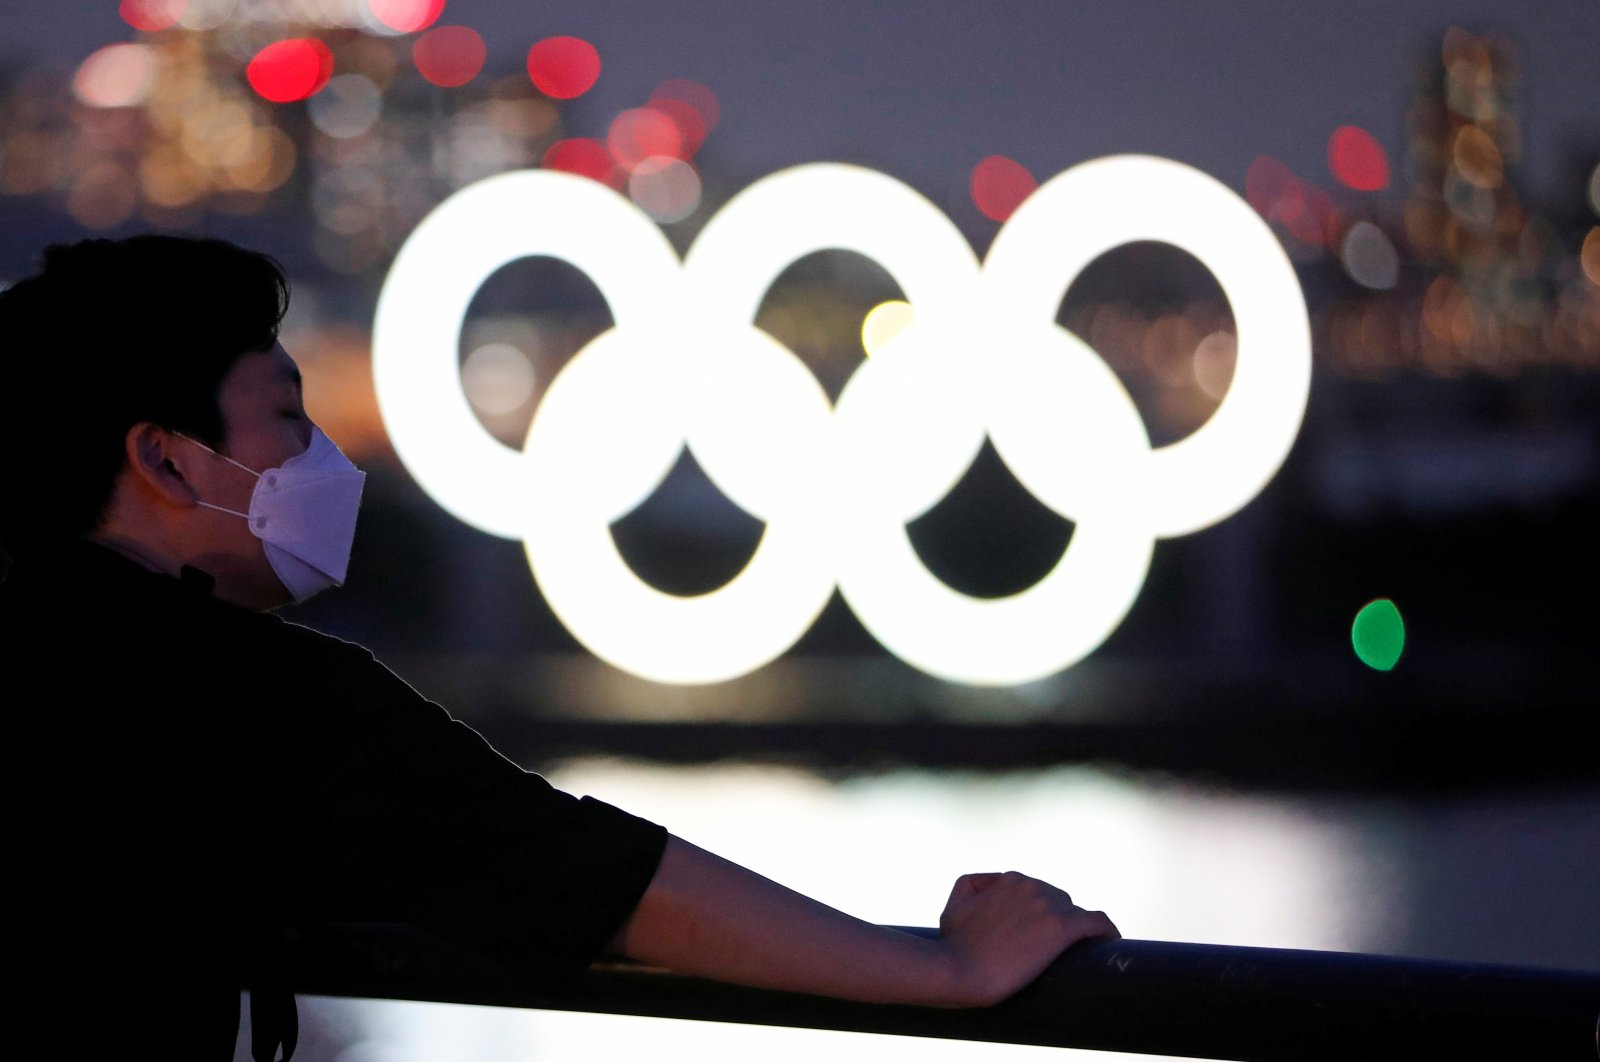 A man wearing a mask stands in the waterfront area in Odaiba Marine Park with the Olympic rings in the background, Tokyo, Japan, July 21, 2020. (Reuters Photo)